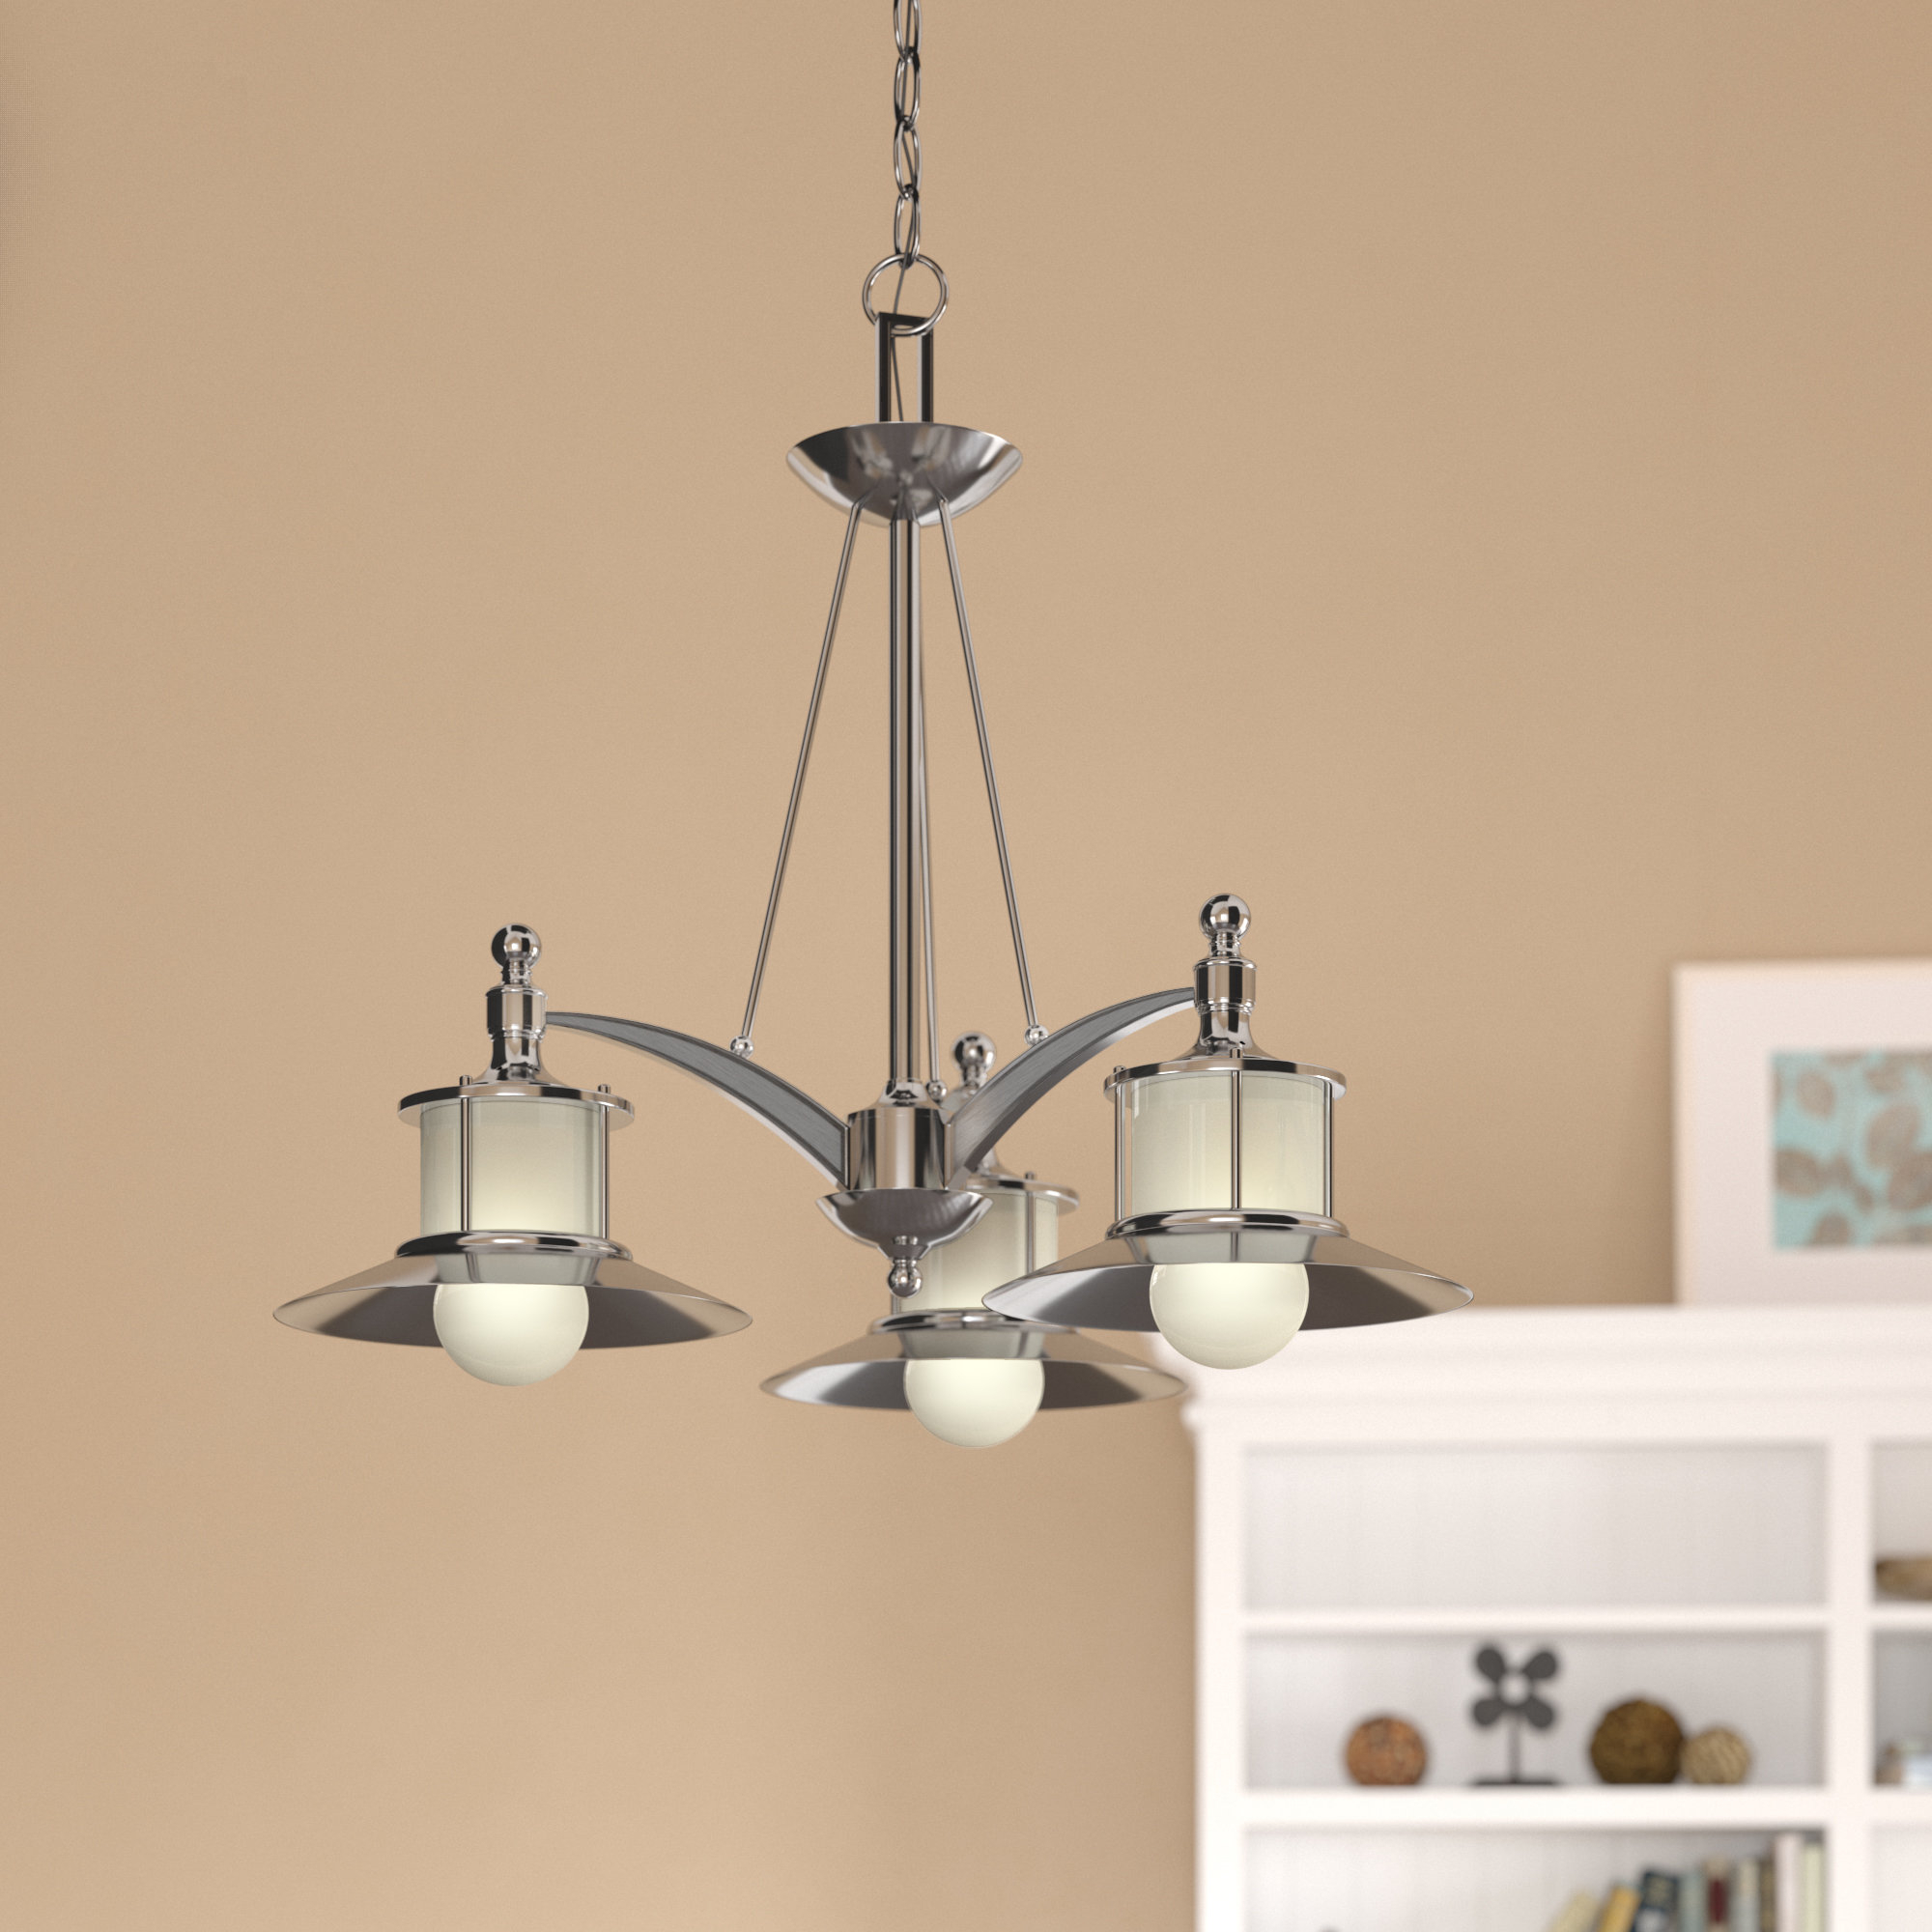 Widely Used Salley 3 Light Shaded Chandelier Regarding Alayna 4 Light Shaded Chandeliers (View 20 of 20)